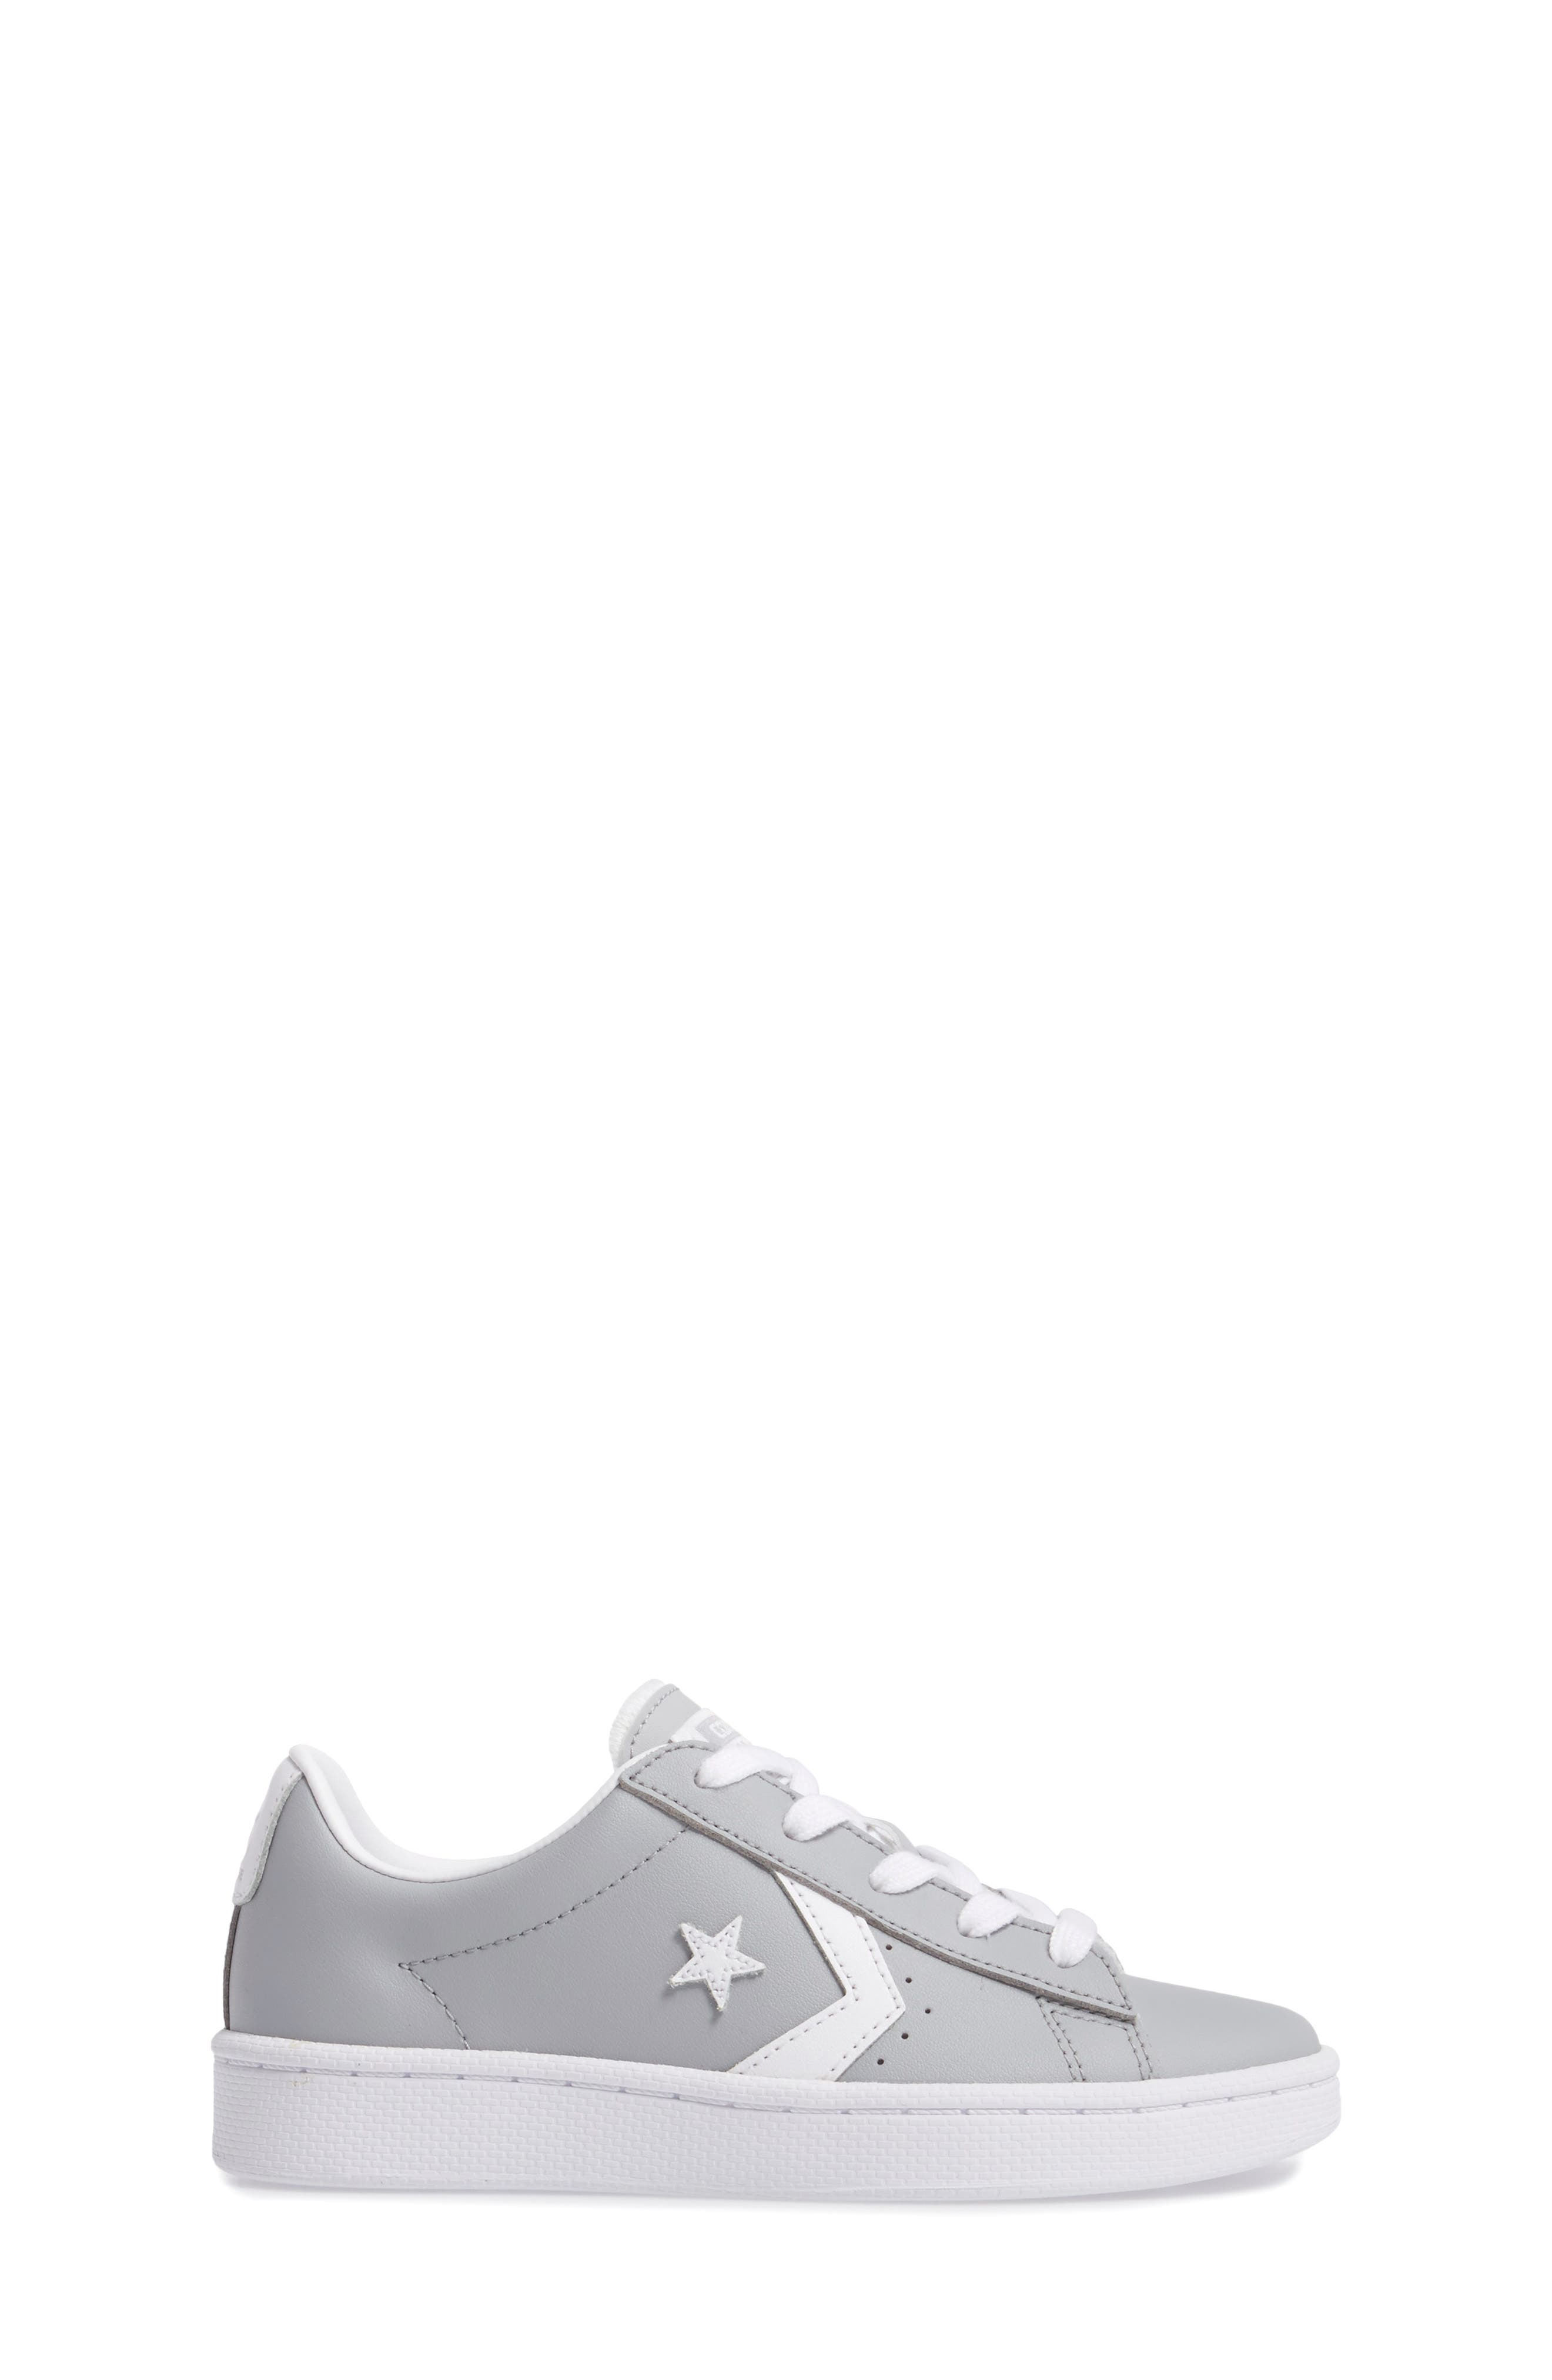 All Star<sup>®</sup> Pro Leather Low Top Sneaker,                             Alternate thumbnail 3, color,                             Wolf Grey